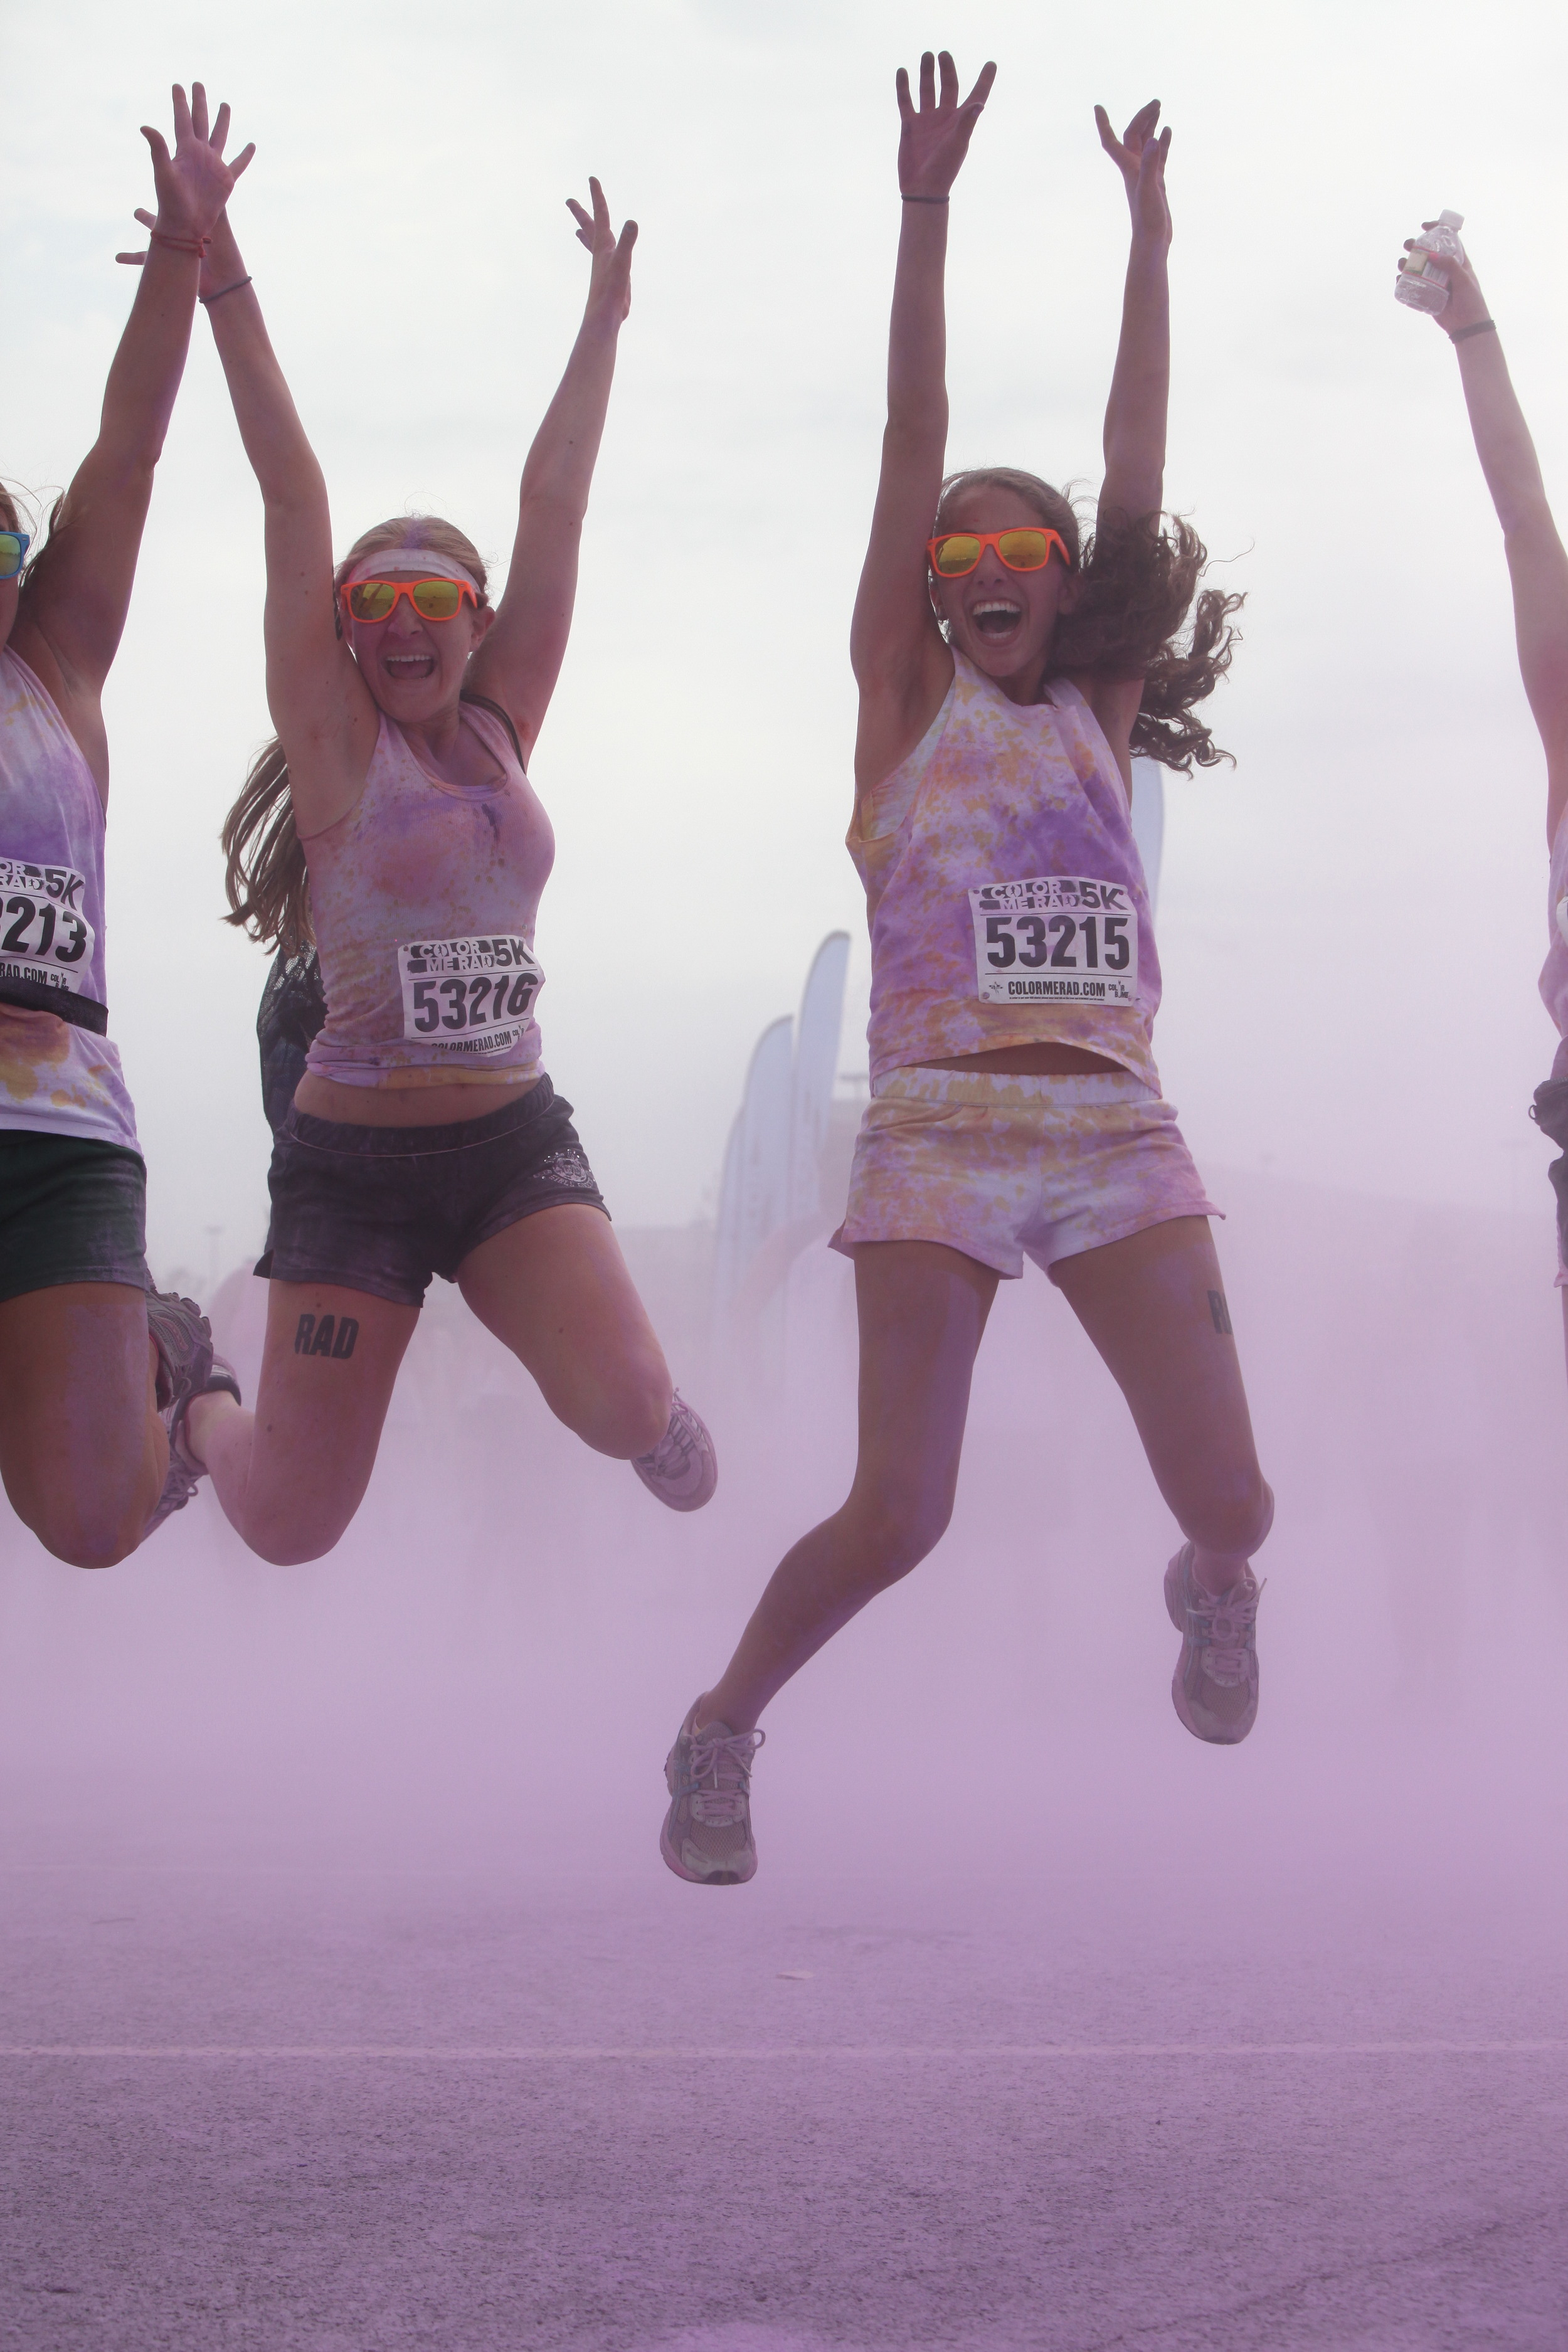 Runners take a leap for the photo op at the Color Me Rad run in New Jersey.